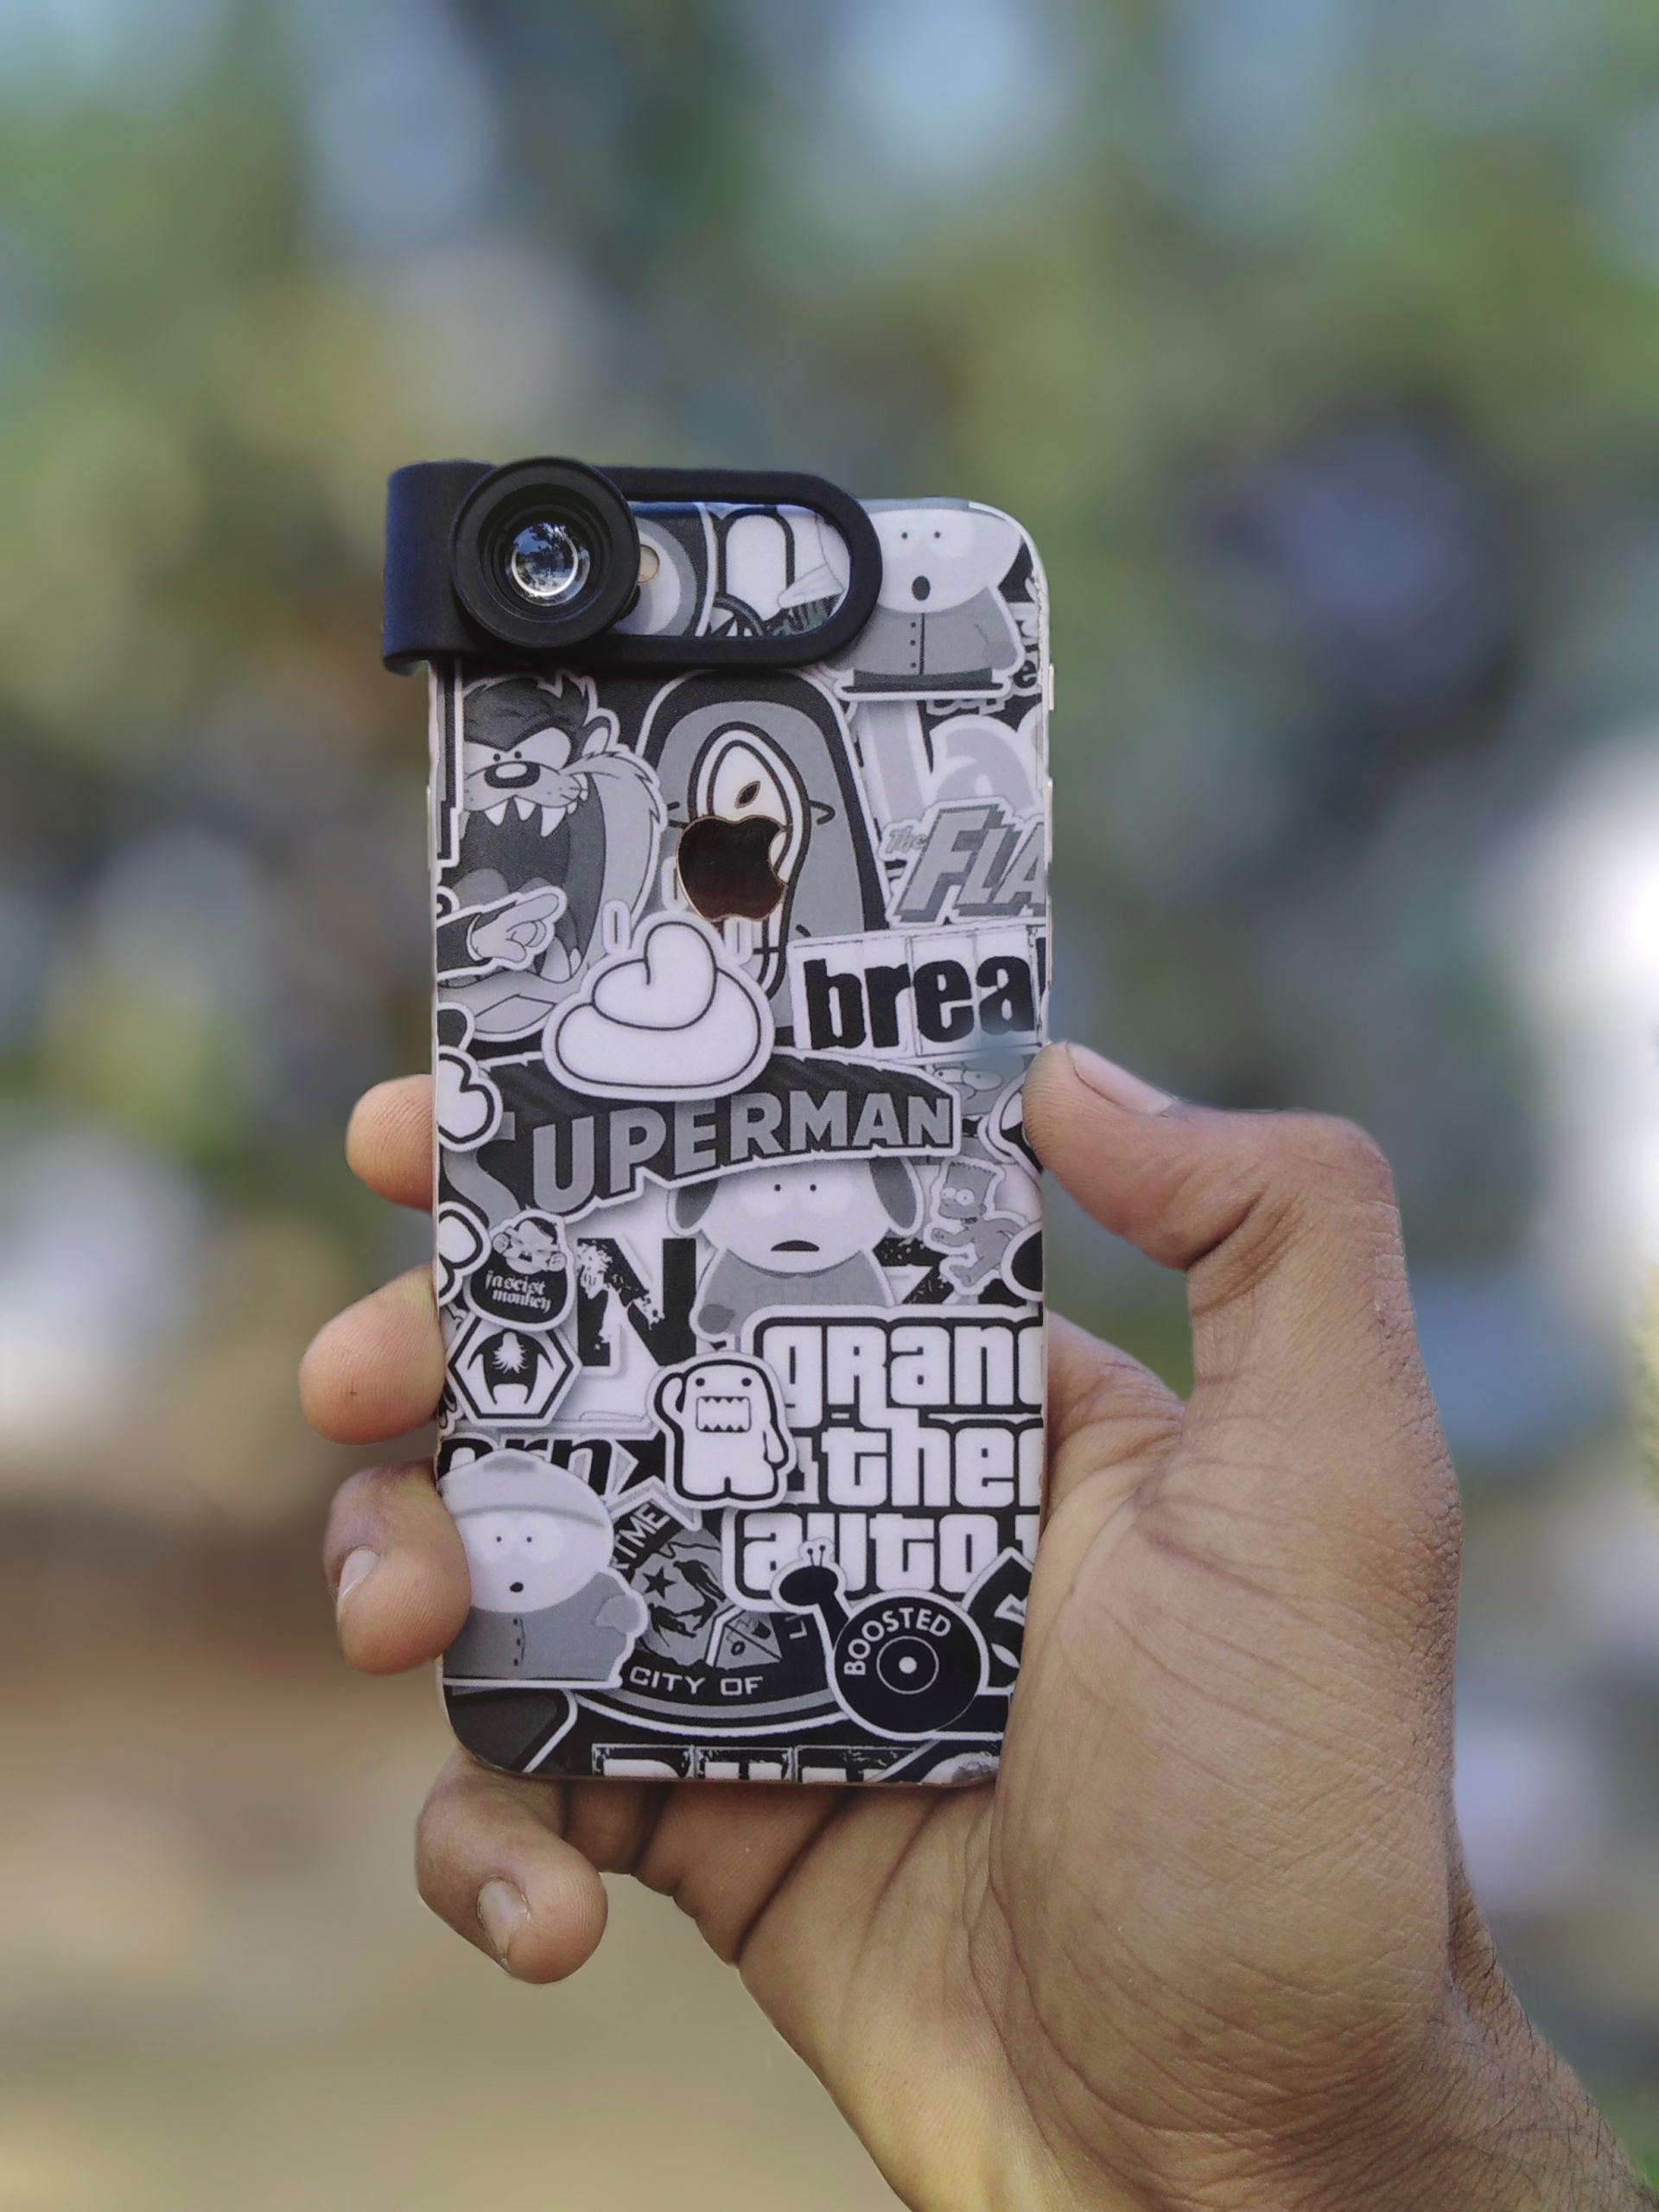 Phone with lens